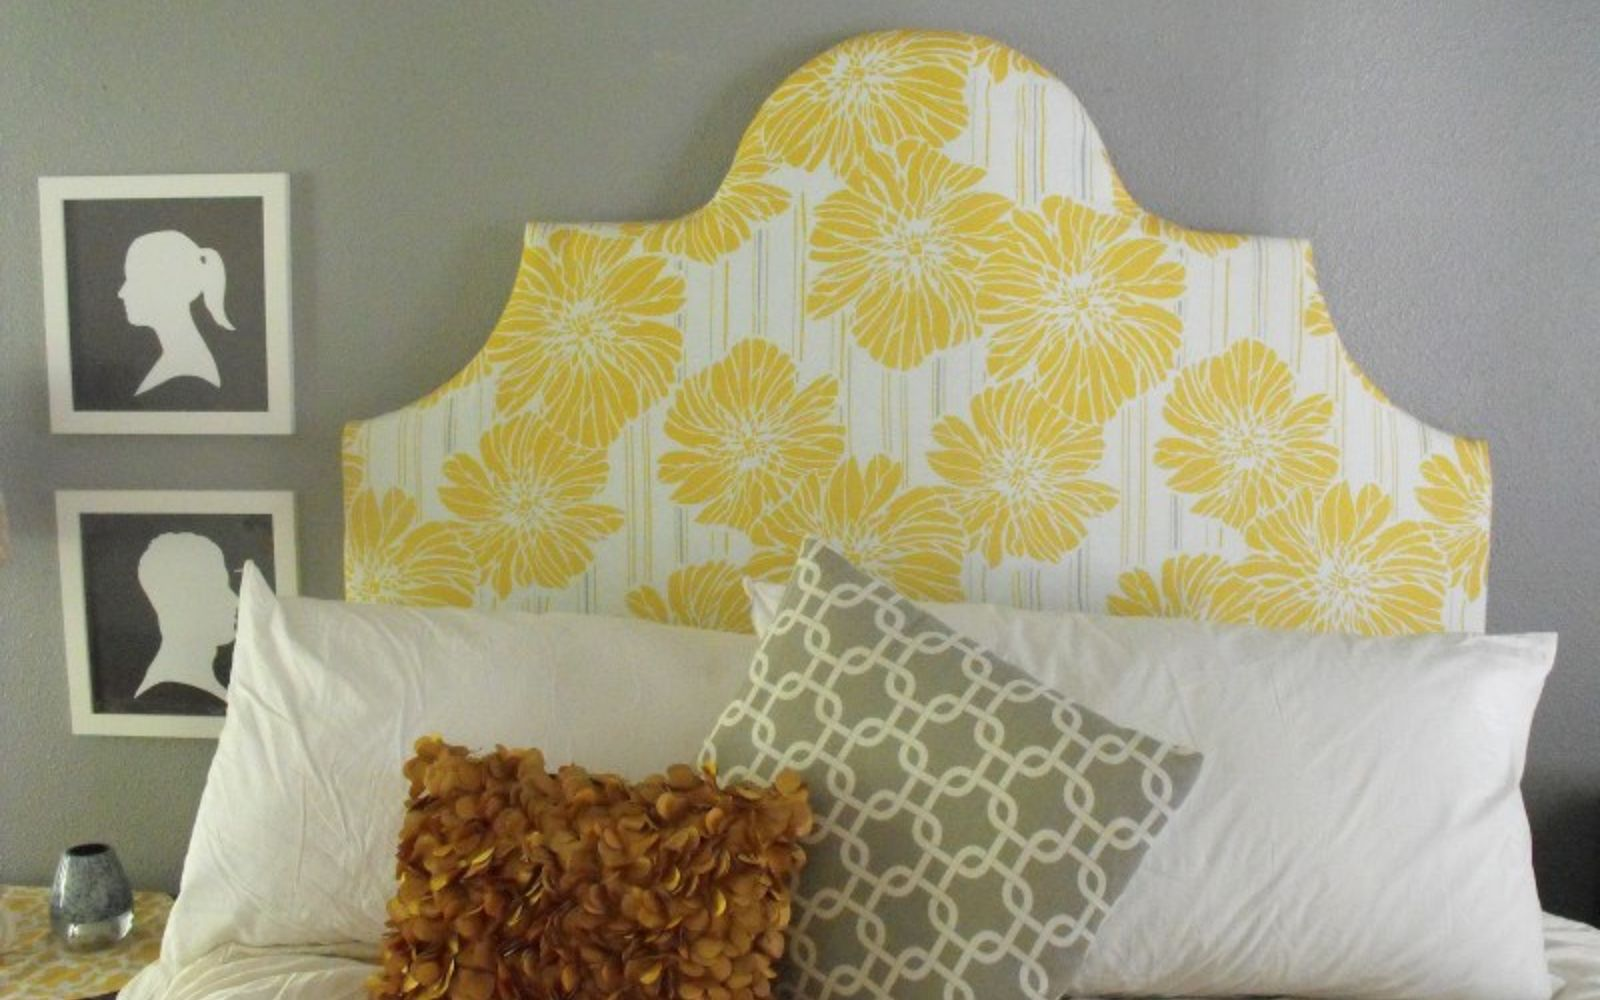 s these are the diy headboard ideas you ve been dreaming of, Get This Sunny Cutout Board